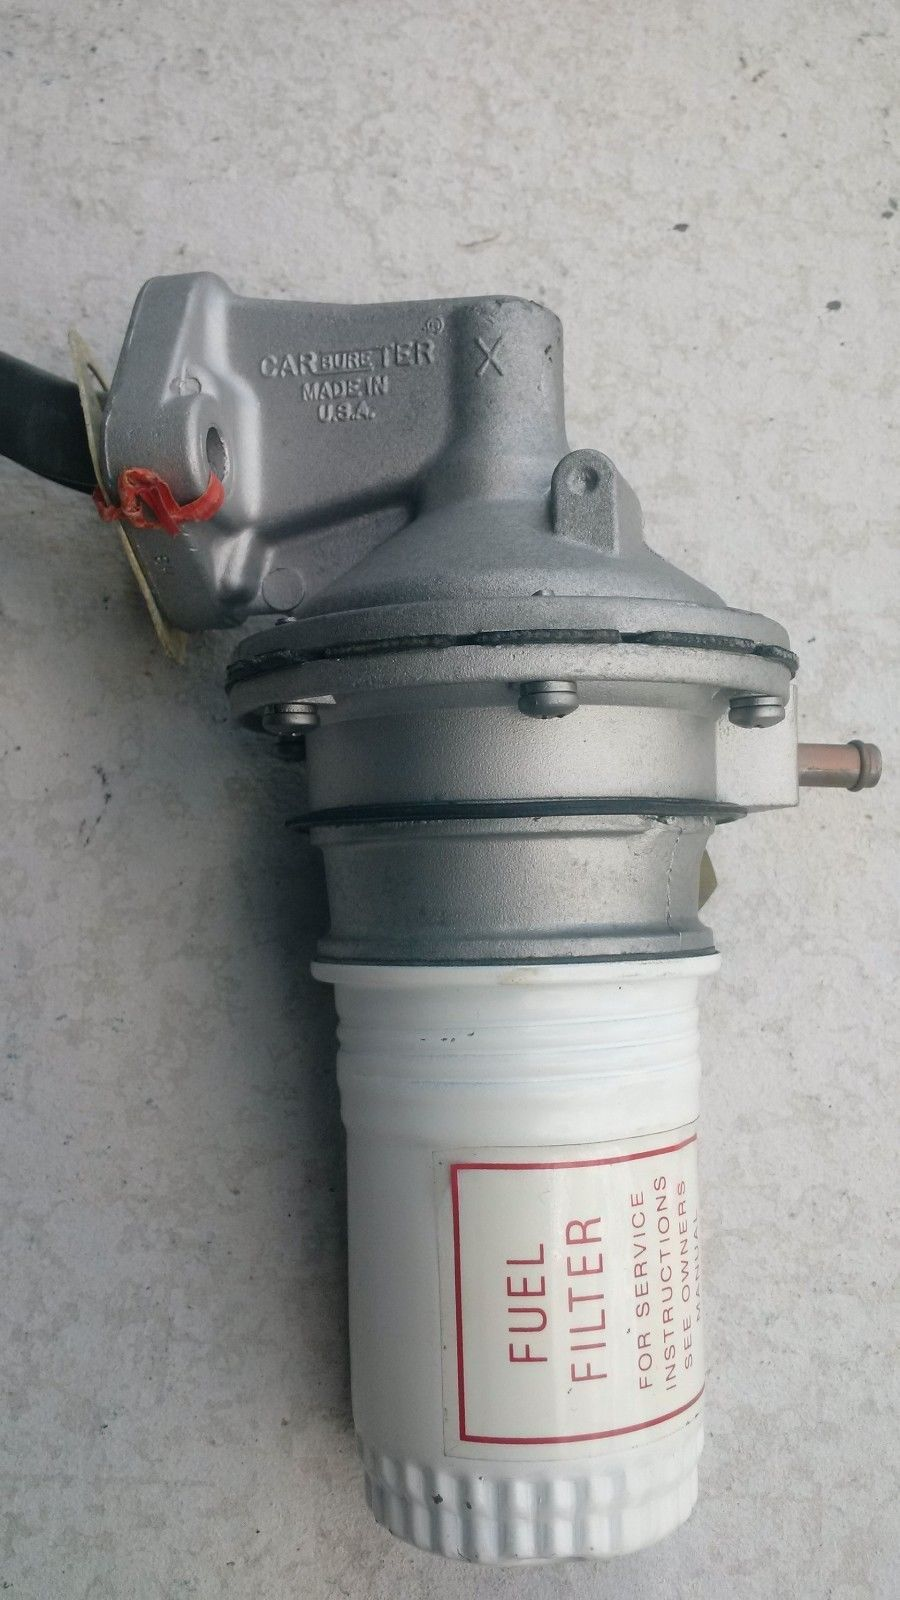 hight resolution of ford 260 289 289 hipo carter x fuel pump 1963 67 mustang shelby k code ebay